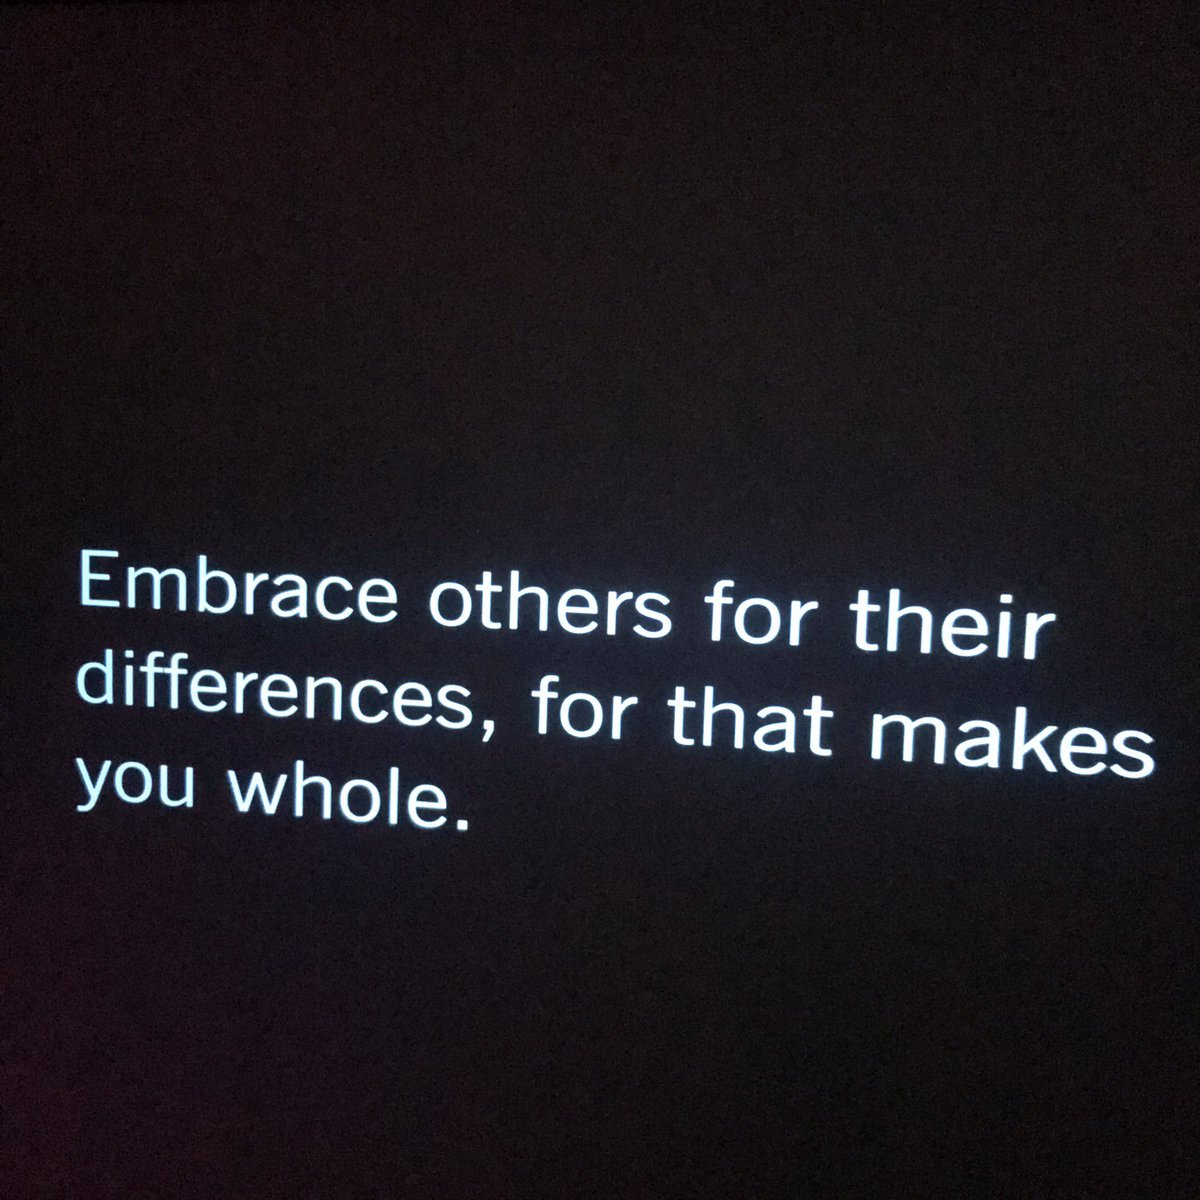 These little messages at the beginning of every #CloneWars  episode was always something that made me think about life and this one is no different<br>http://pic.twitter.com/Ftht8LfyUw